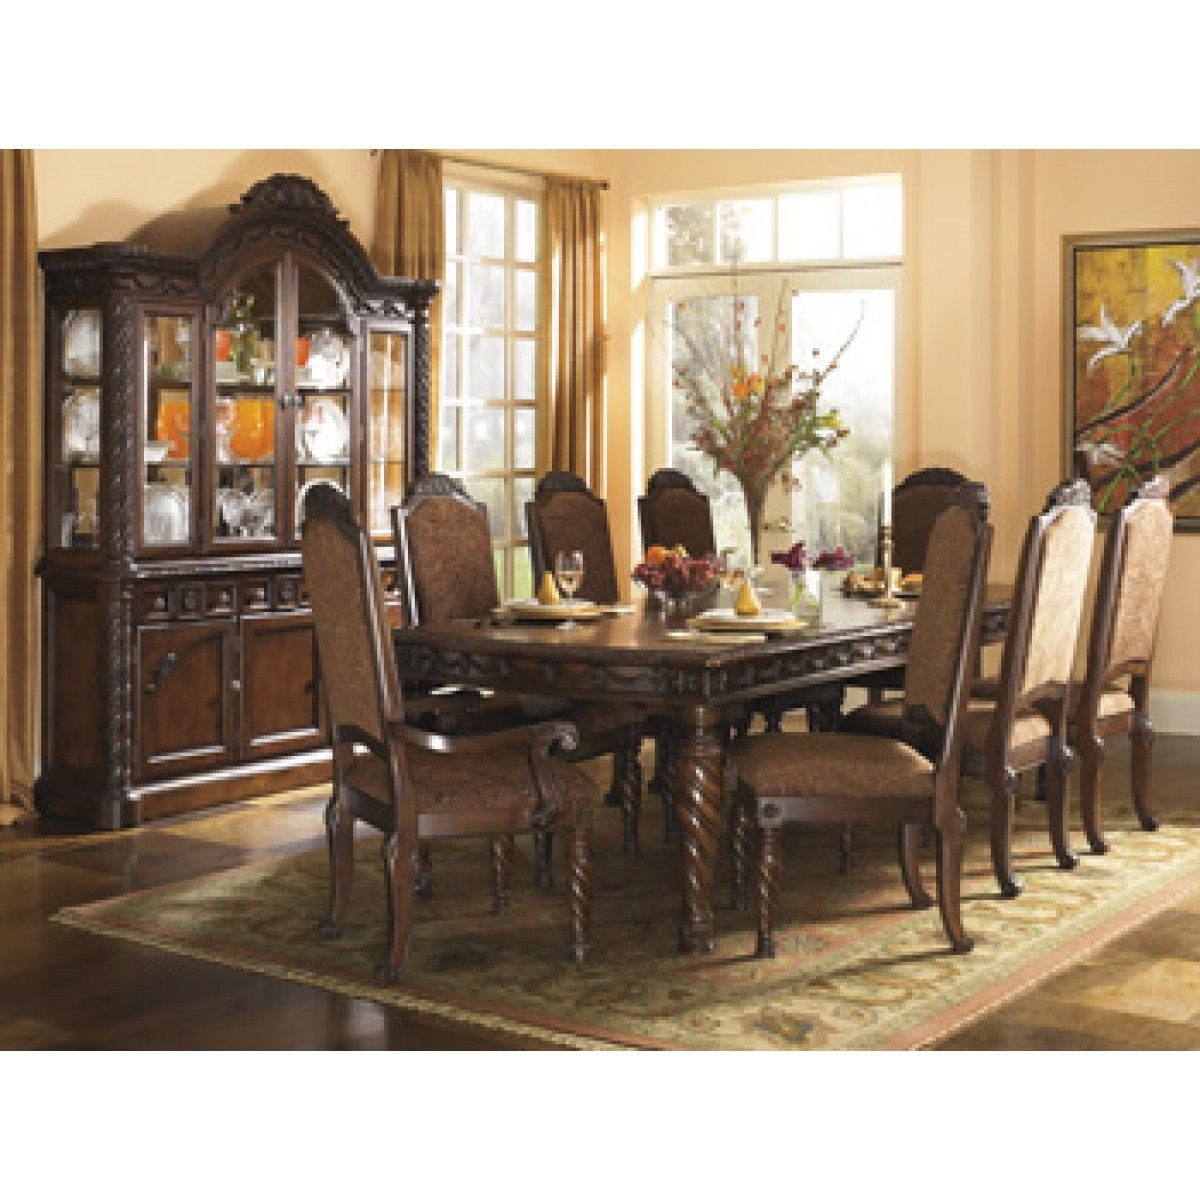 Charmant North Shore Ashley Bedroom Furniture | ... ASHLEY Ashley Furniture North  Shore Dining Room